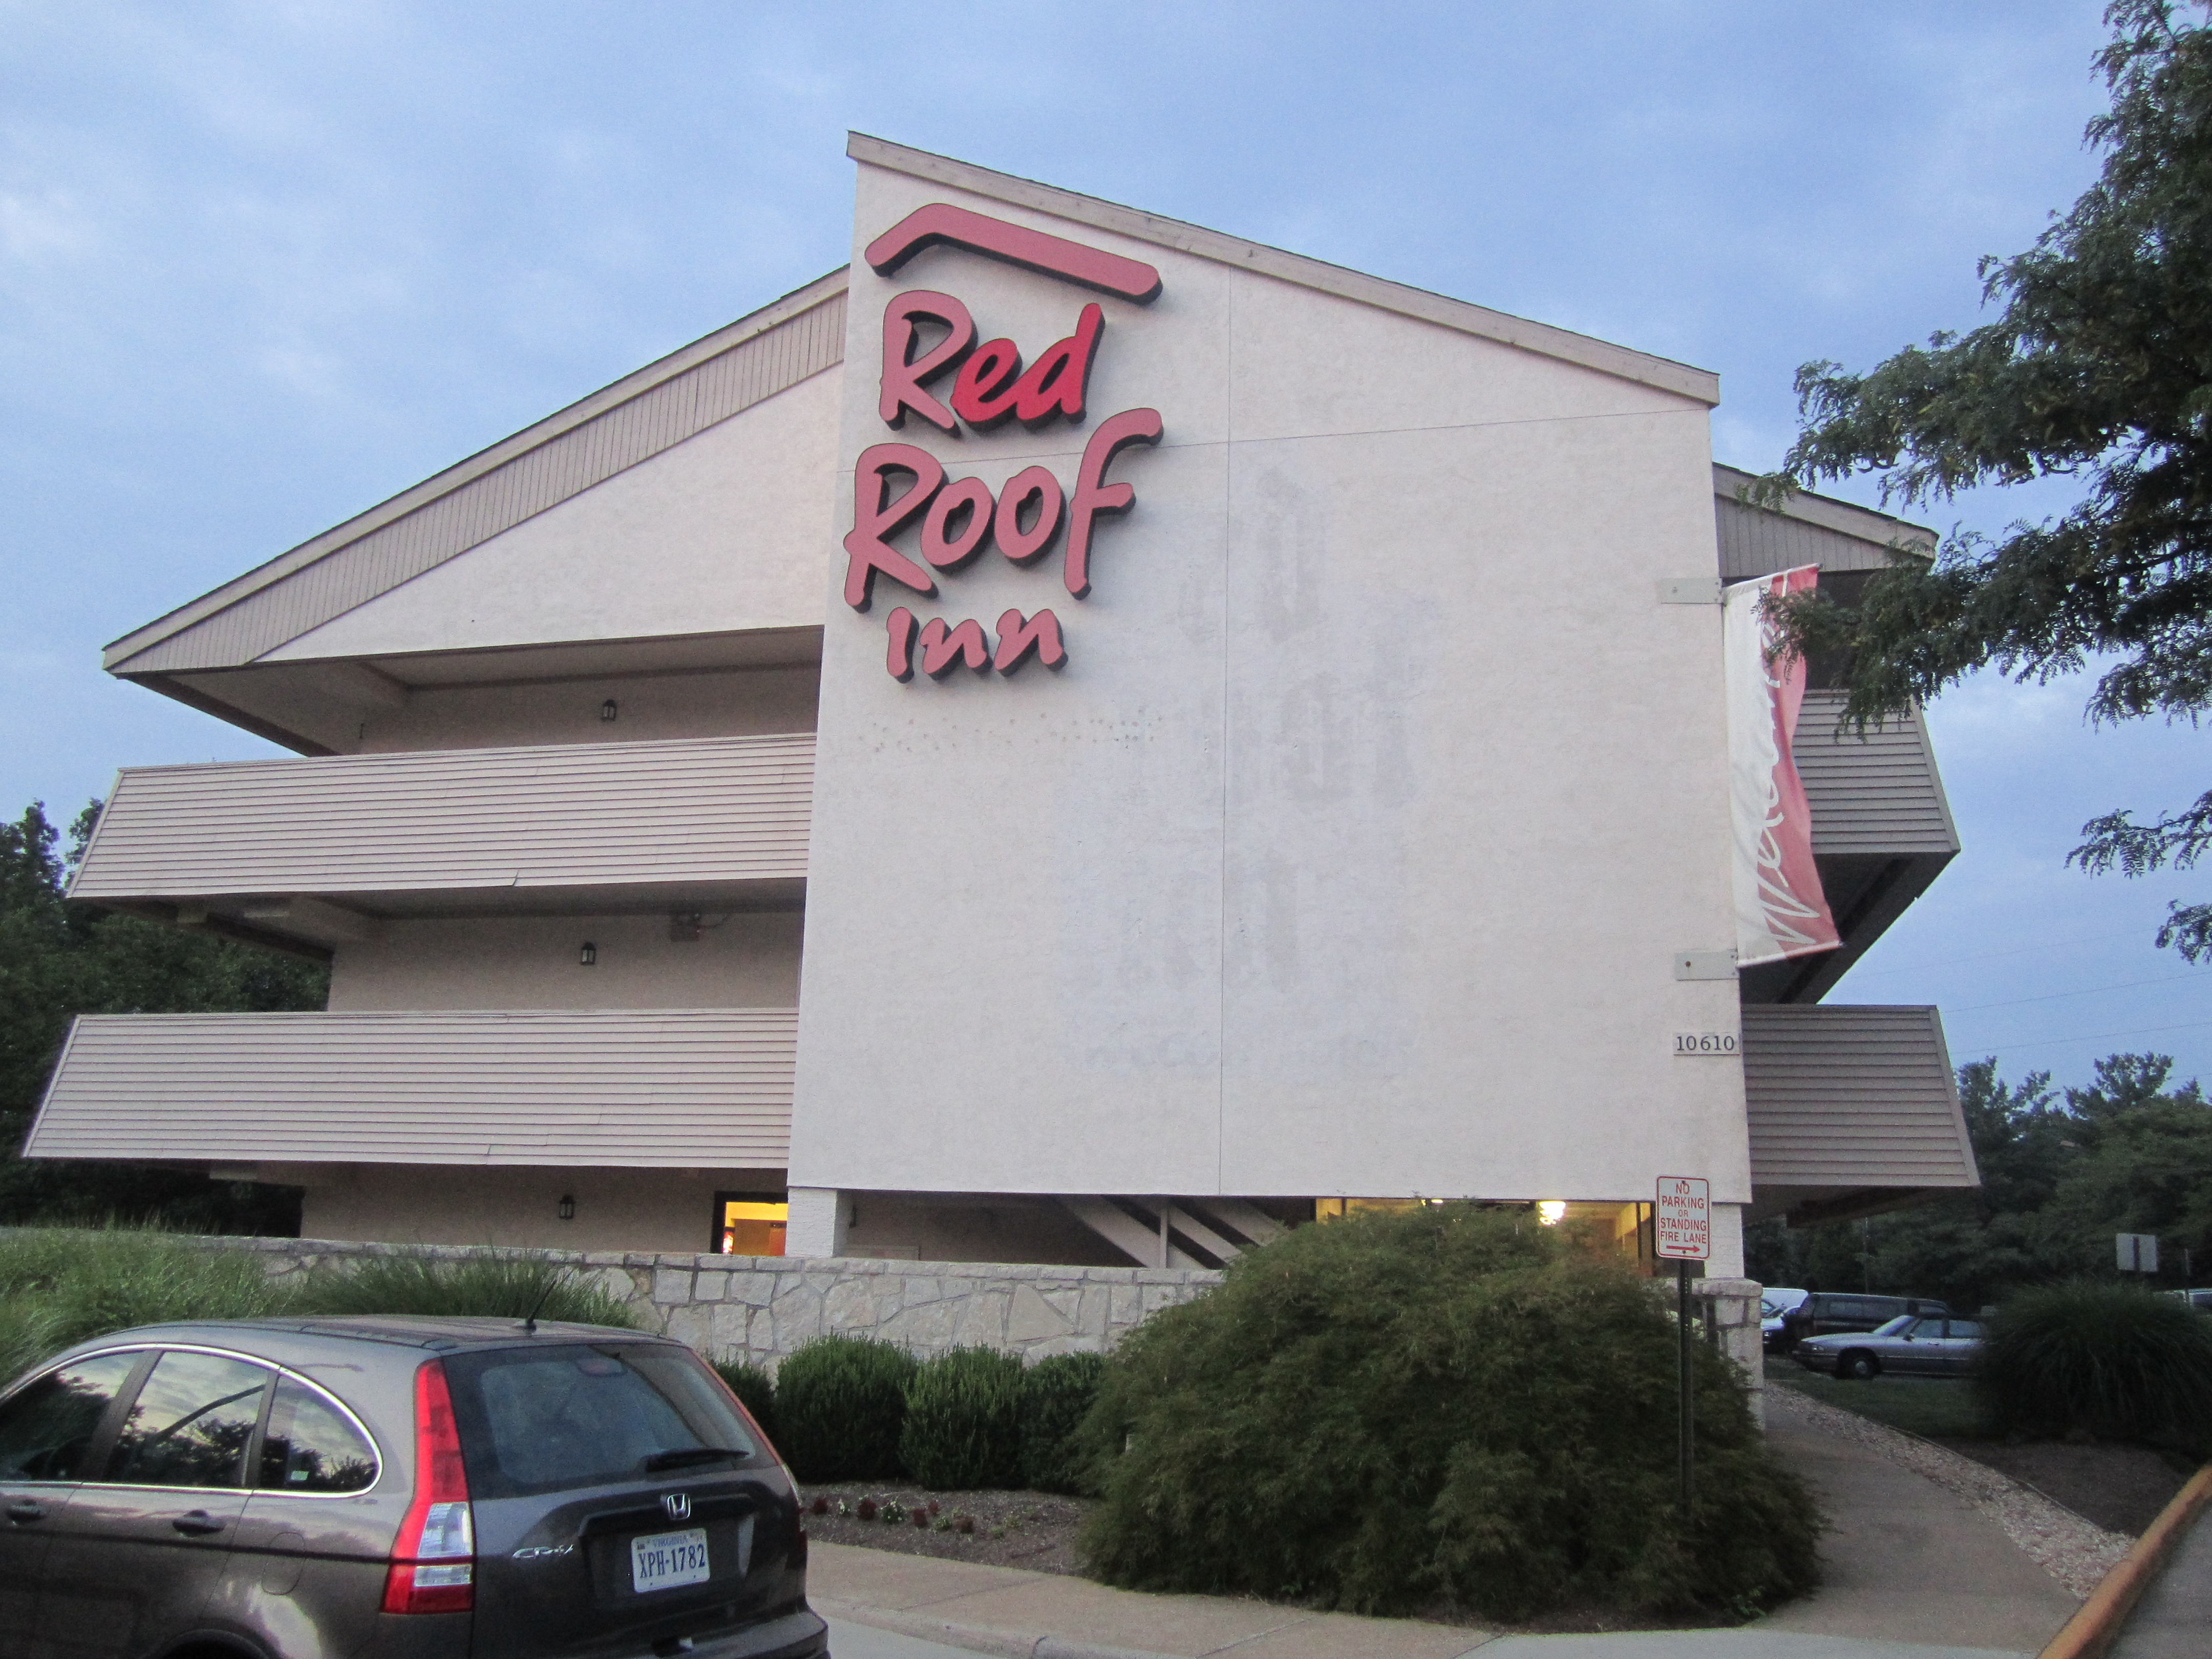 Red Roof Inn Houston East is due east of downtown Houston, with convenient access to San Jacinto College and the San Jacinto Battleground. From here, enjoy quick & easy access to Downtown Houston, Minute Maid Park, George R. Brown Convention Center and other area attractions.